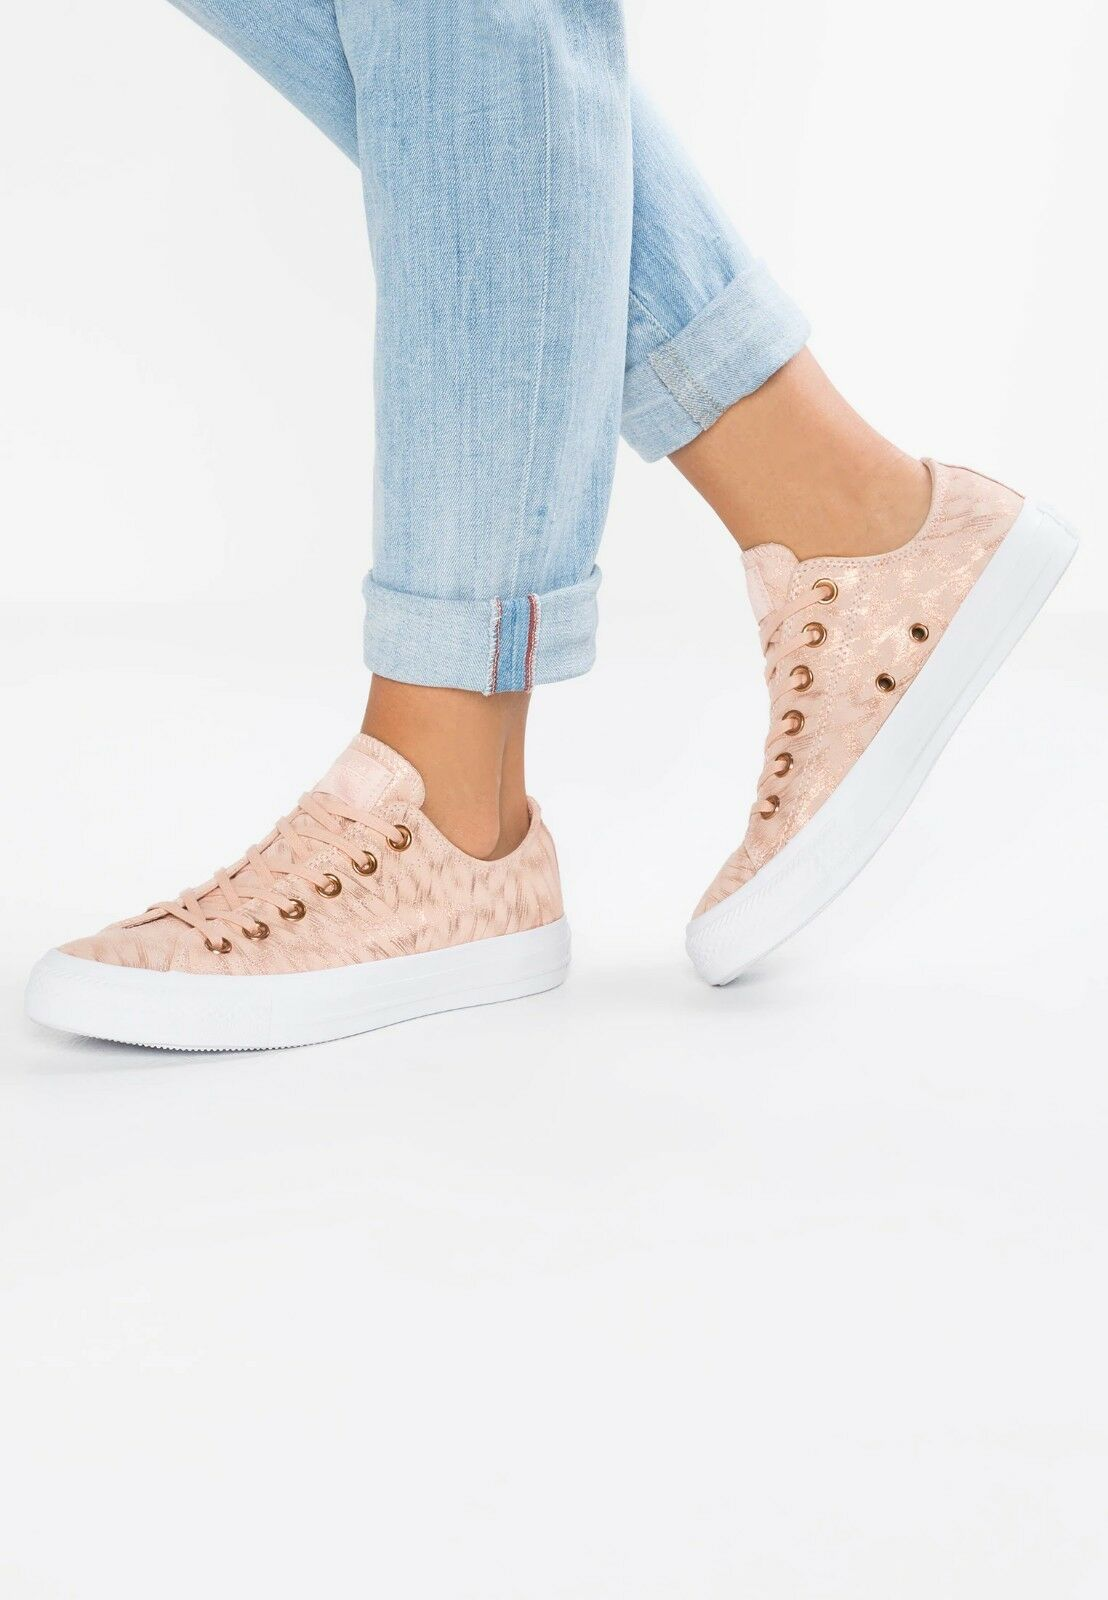 CHUCK TAYLOR ALL STAR SHIMMER SUEDE TRAINERS UK 3.5